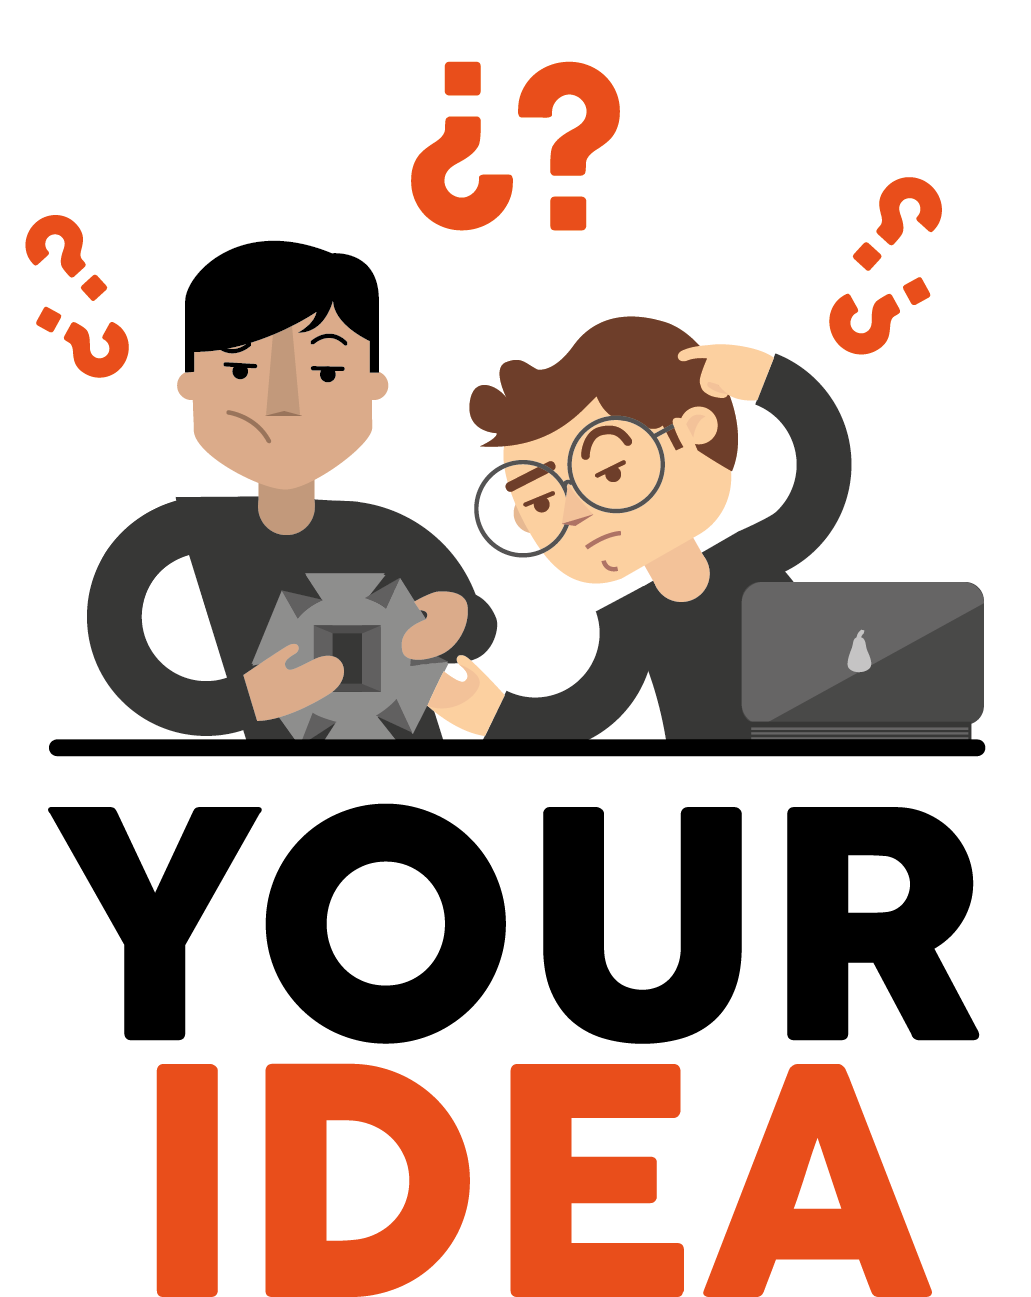 Developing your ideas have never been easy right? - Bring us the ideas you have on your desk or in your mind that remain unfinished.